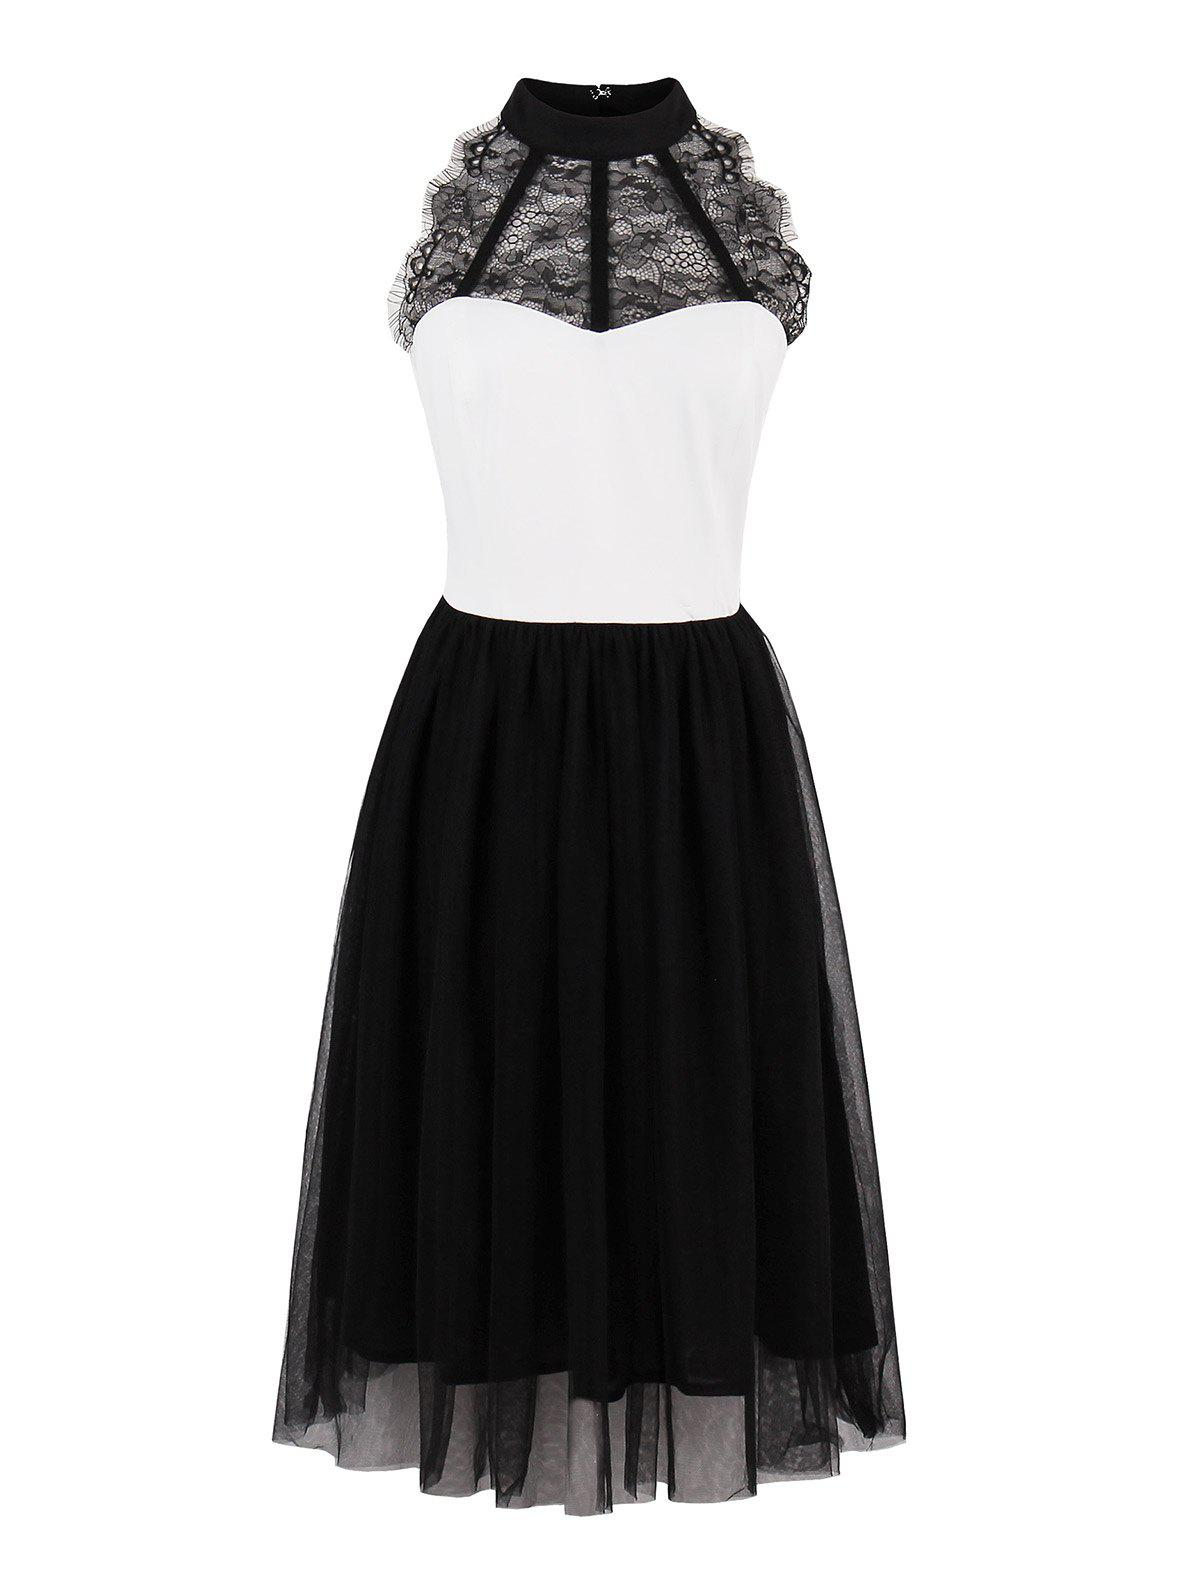 Lace Panel Color Block Pin Up Dress - Blanc Noir XL